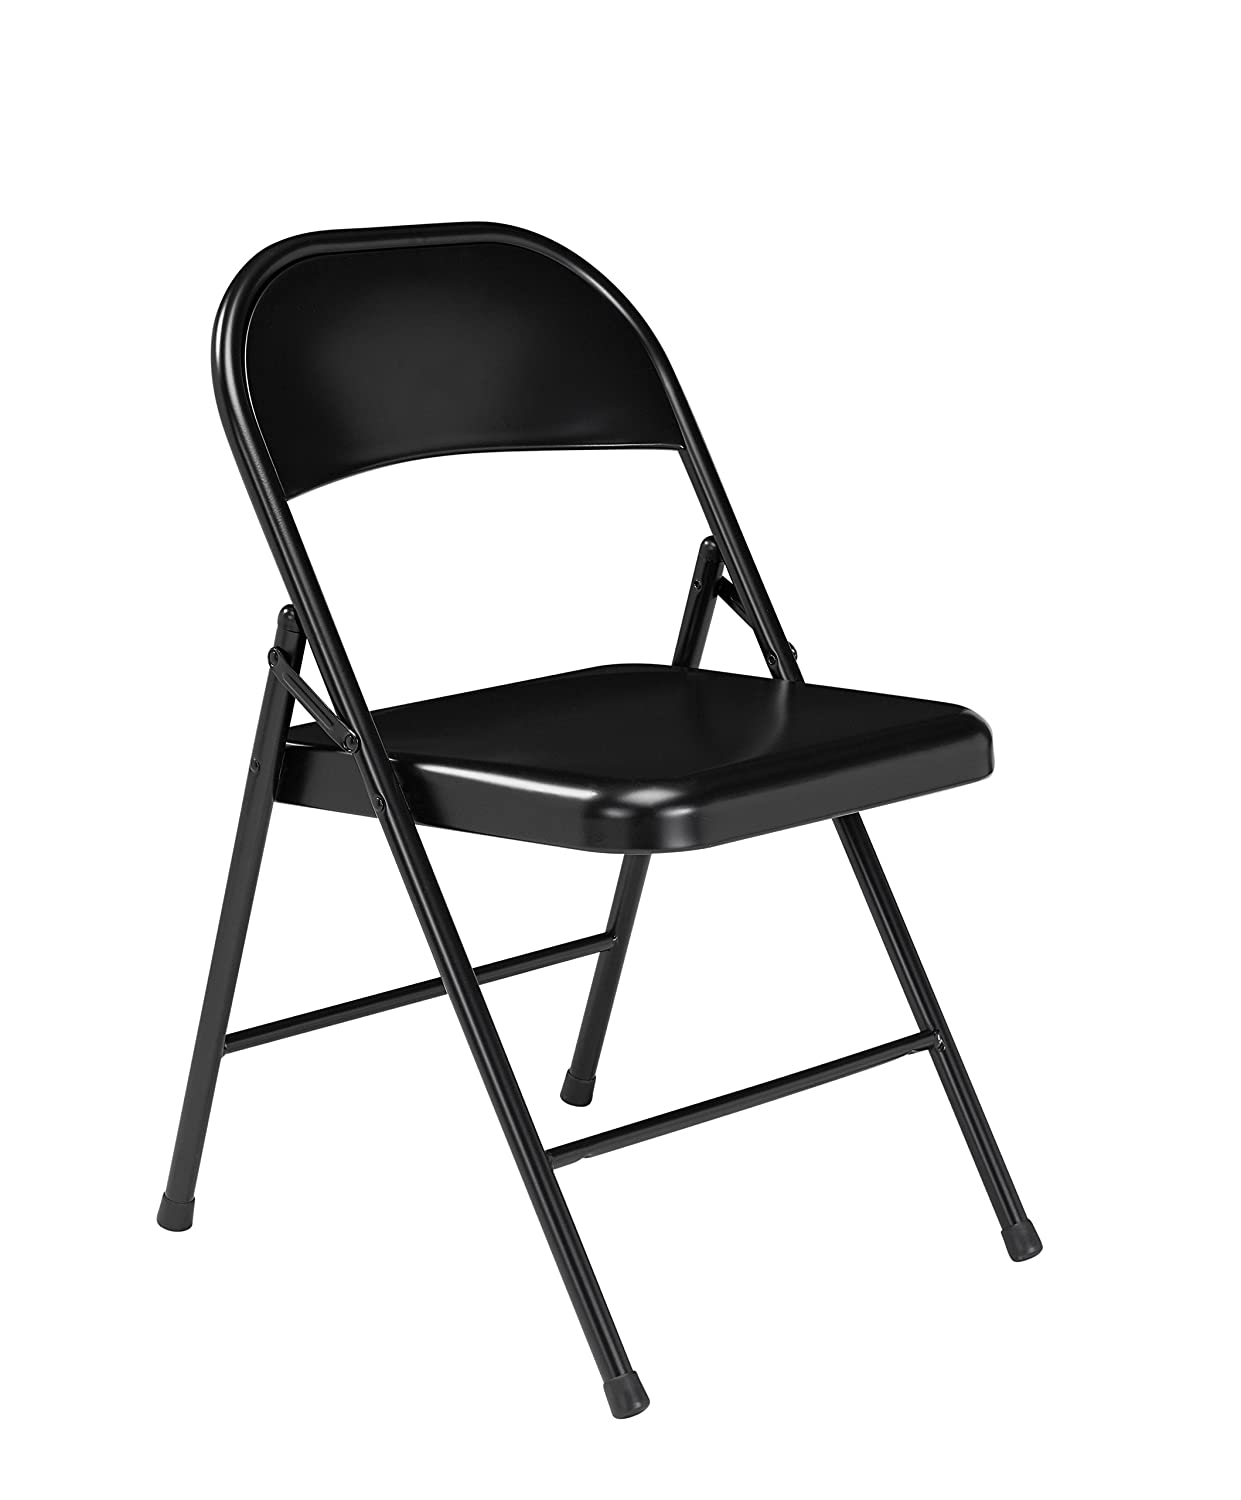 4 Pack National Public Seating 910 Commercialine Steel Folding Chair, Black